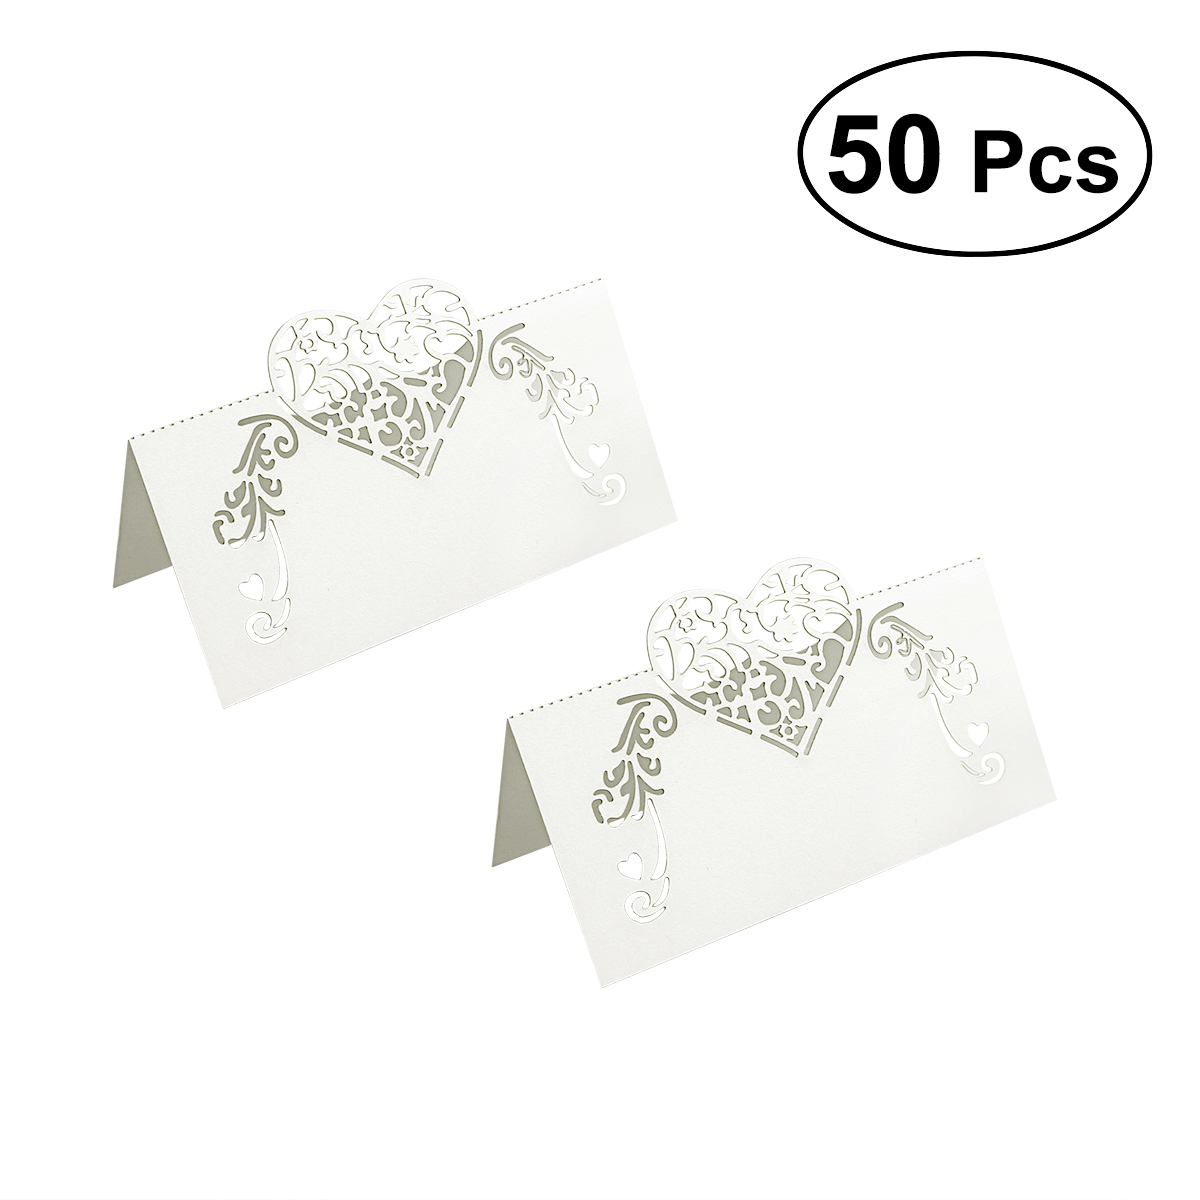 Image 2 - NICEXMAS 50pcs Laser Cut Heart Shape Place Cards Wedding Name Cards For Wedding Party Table Decoration Wedding Decor-in Party DIY Decorations from Home & Garden